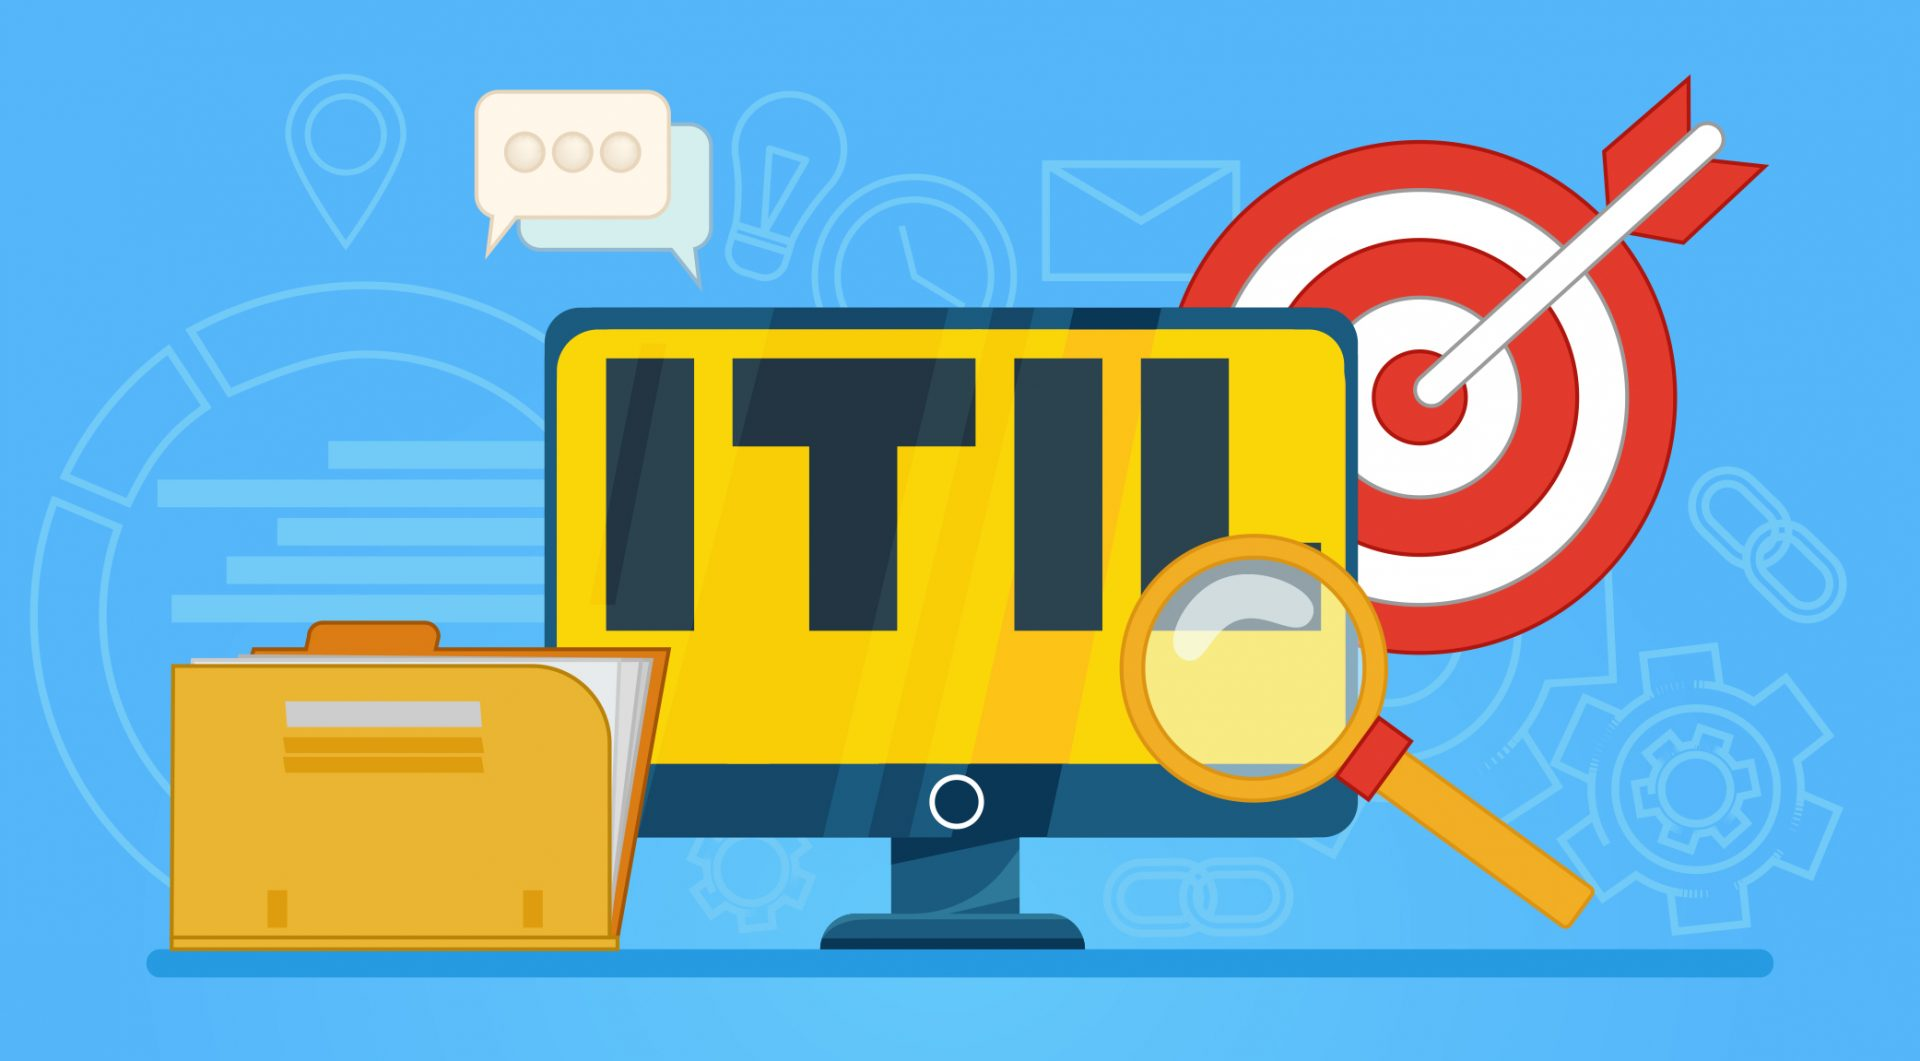 ITIL Graphic